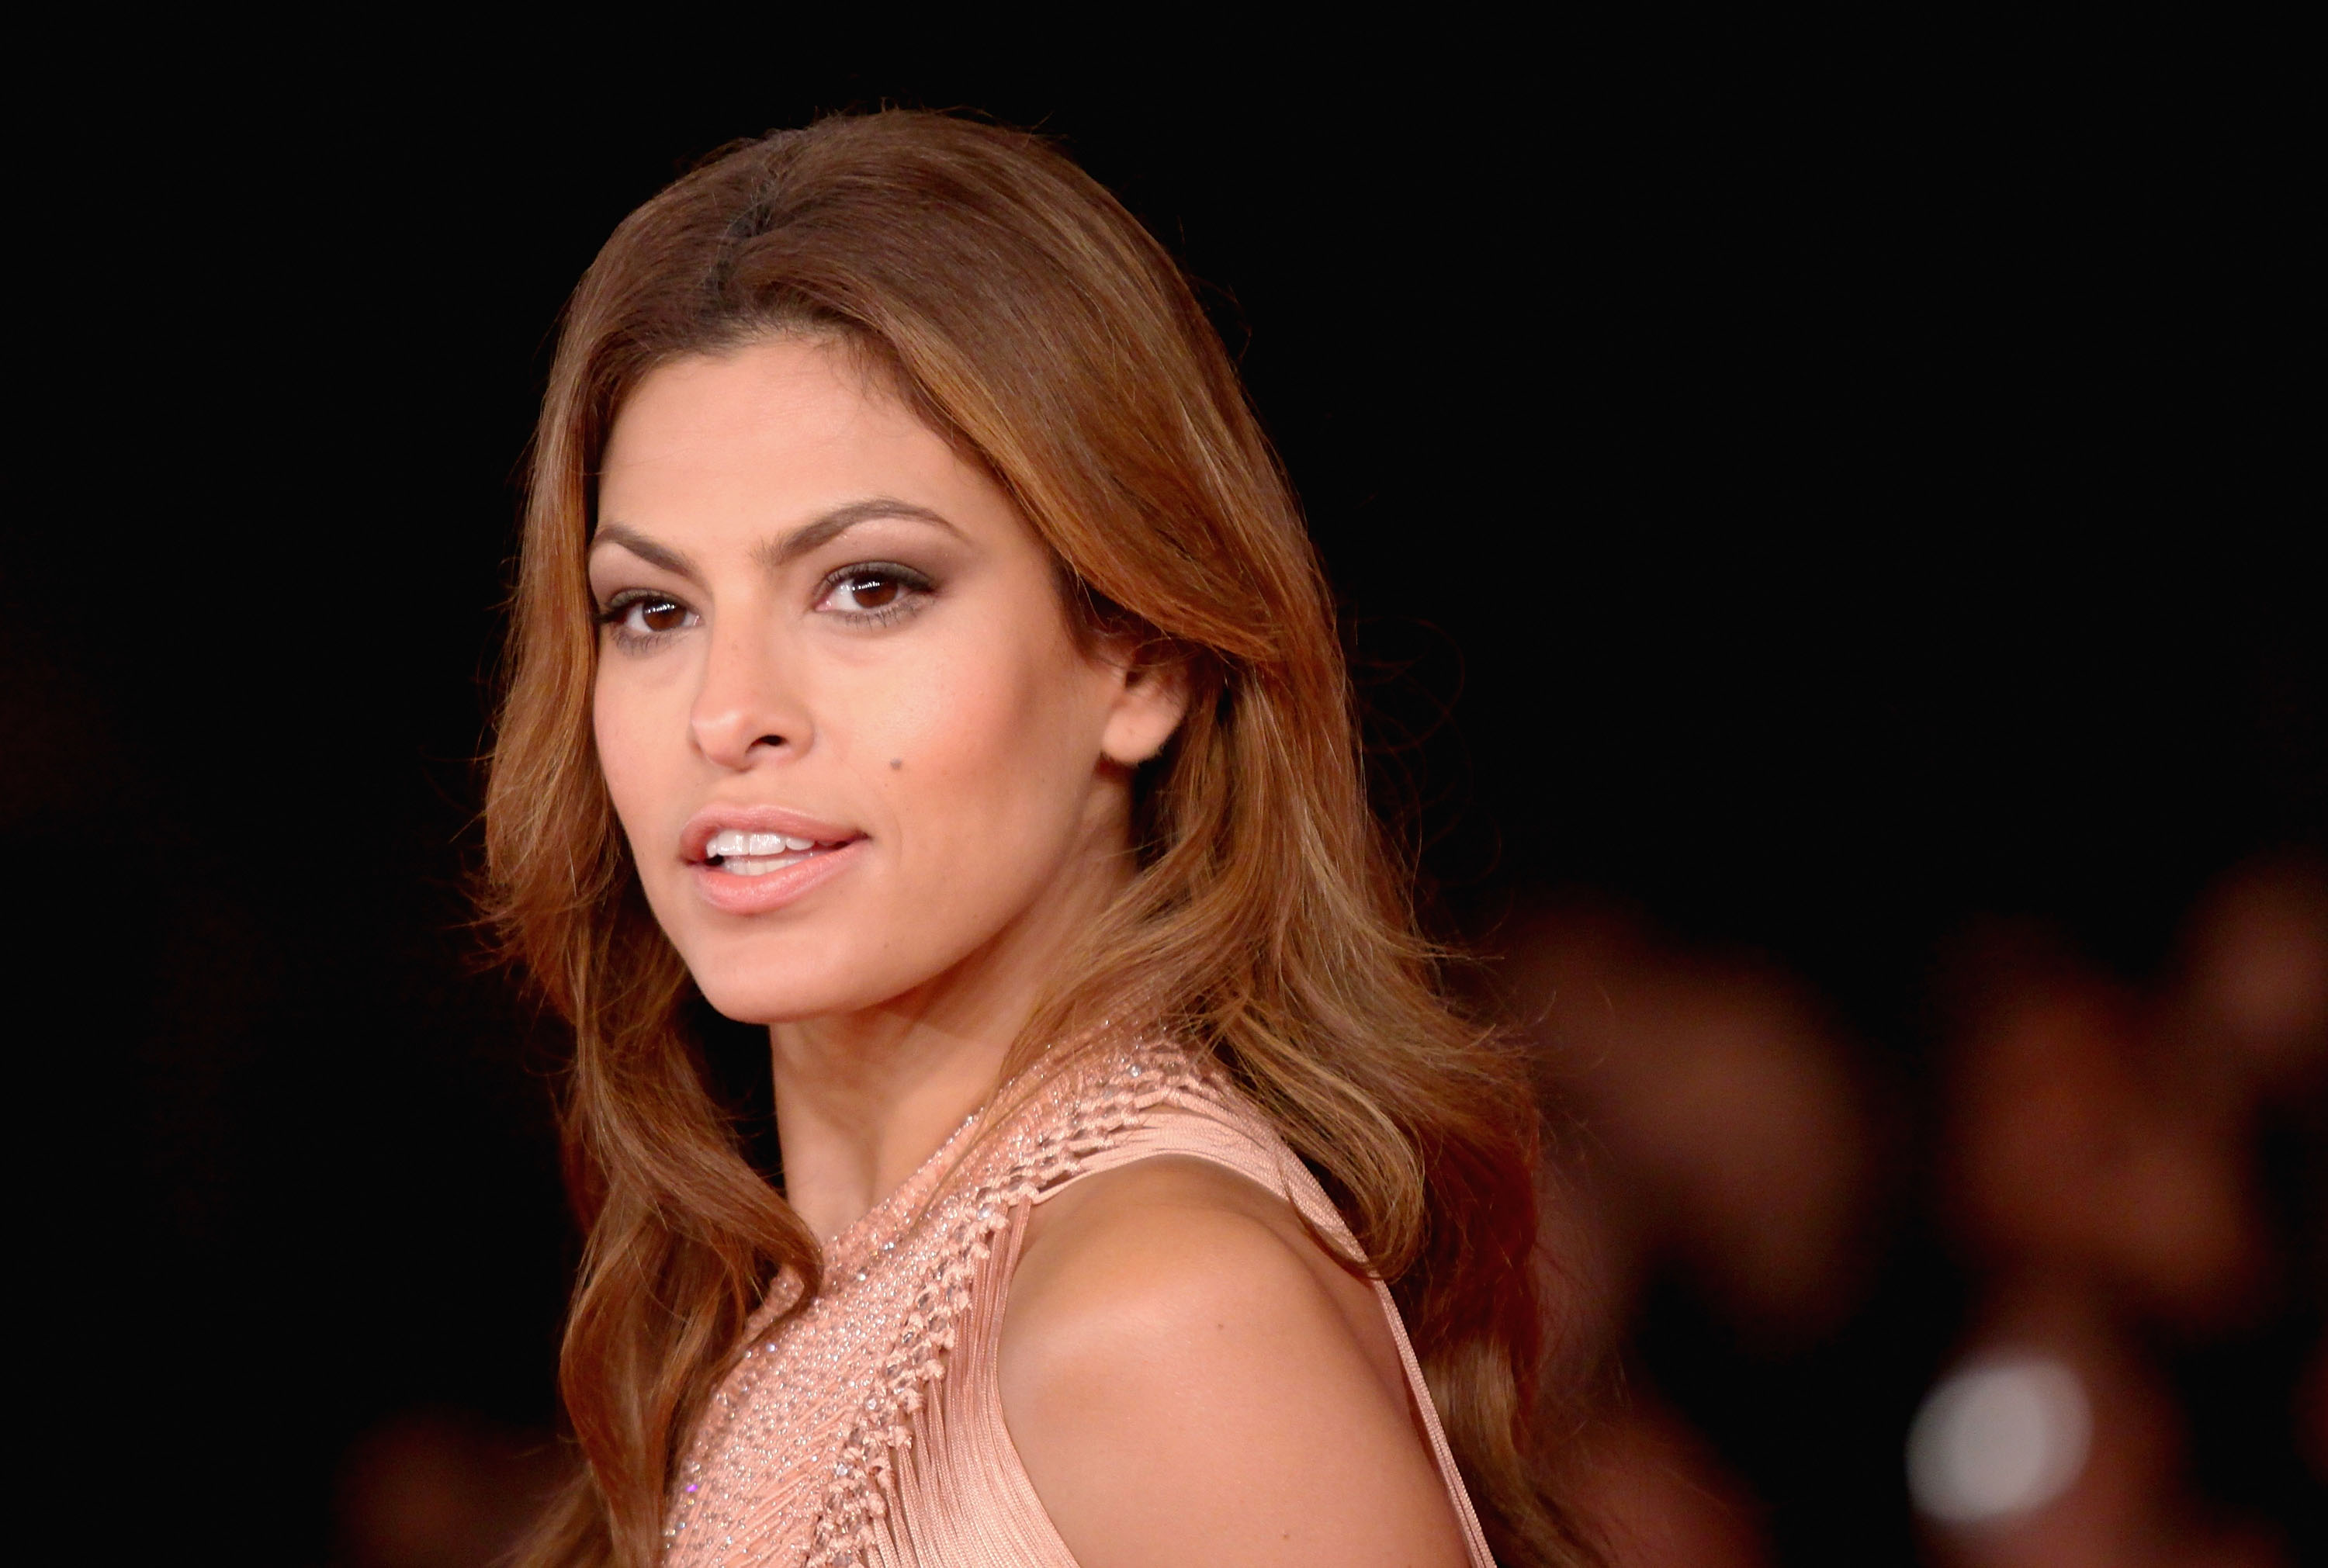 ROME - OCTOBER 29:  Actress Eva Mendes attends the  Little White Lies  premiere during The 5th International Rome Film Festival at Auditorium Parco Della Musica on October 29, 2010 in Rome, Italy.  (Photo by Ernesto Ruscio/Getty Images)